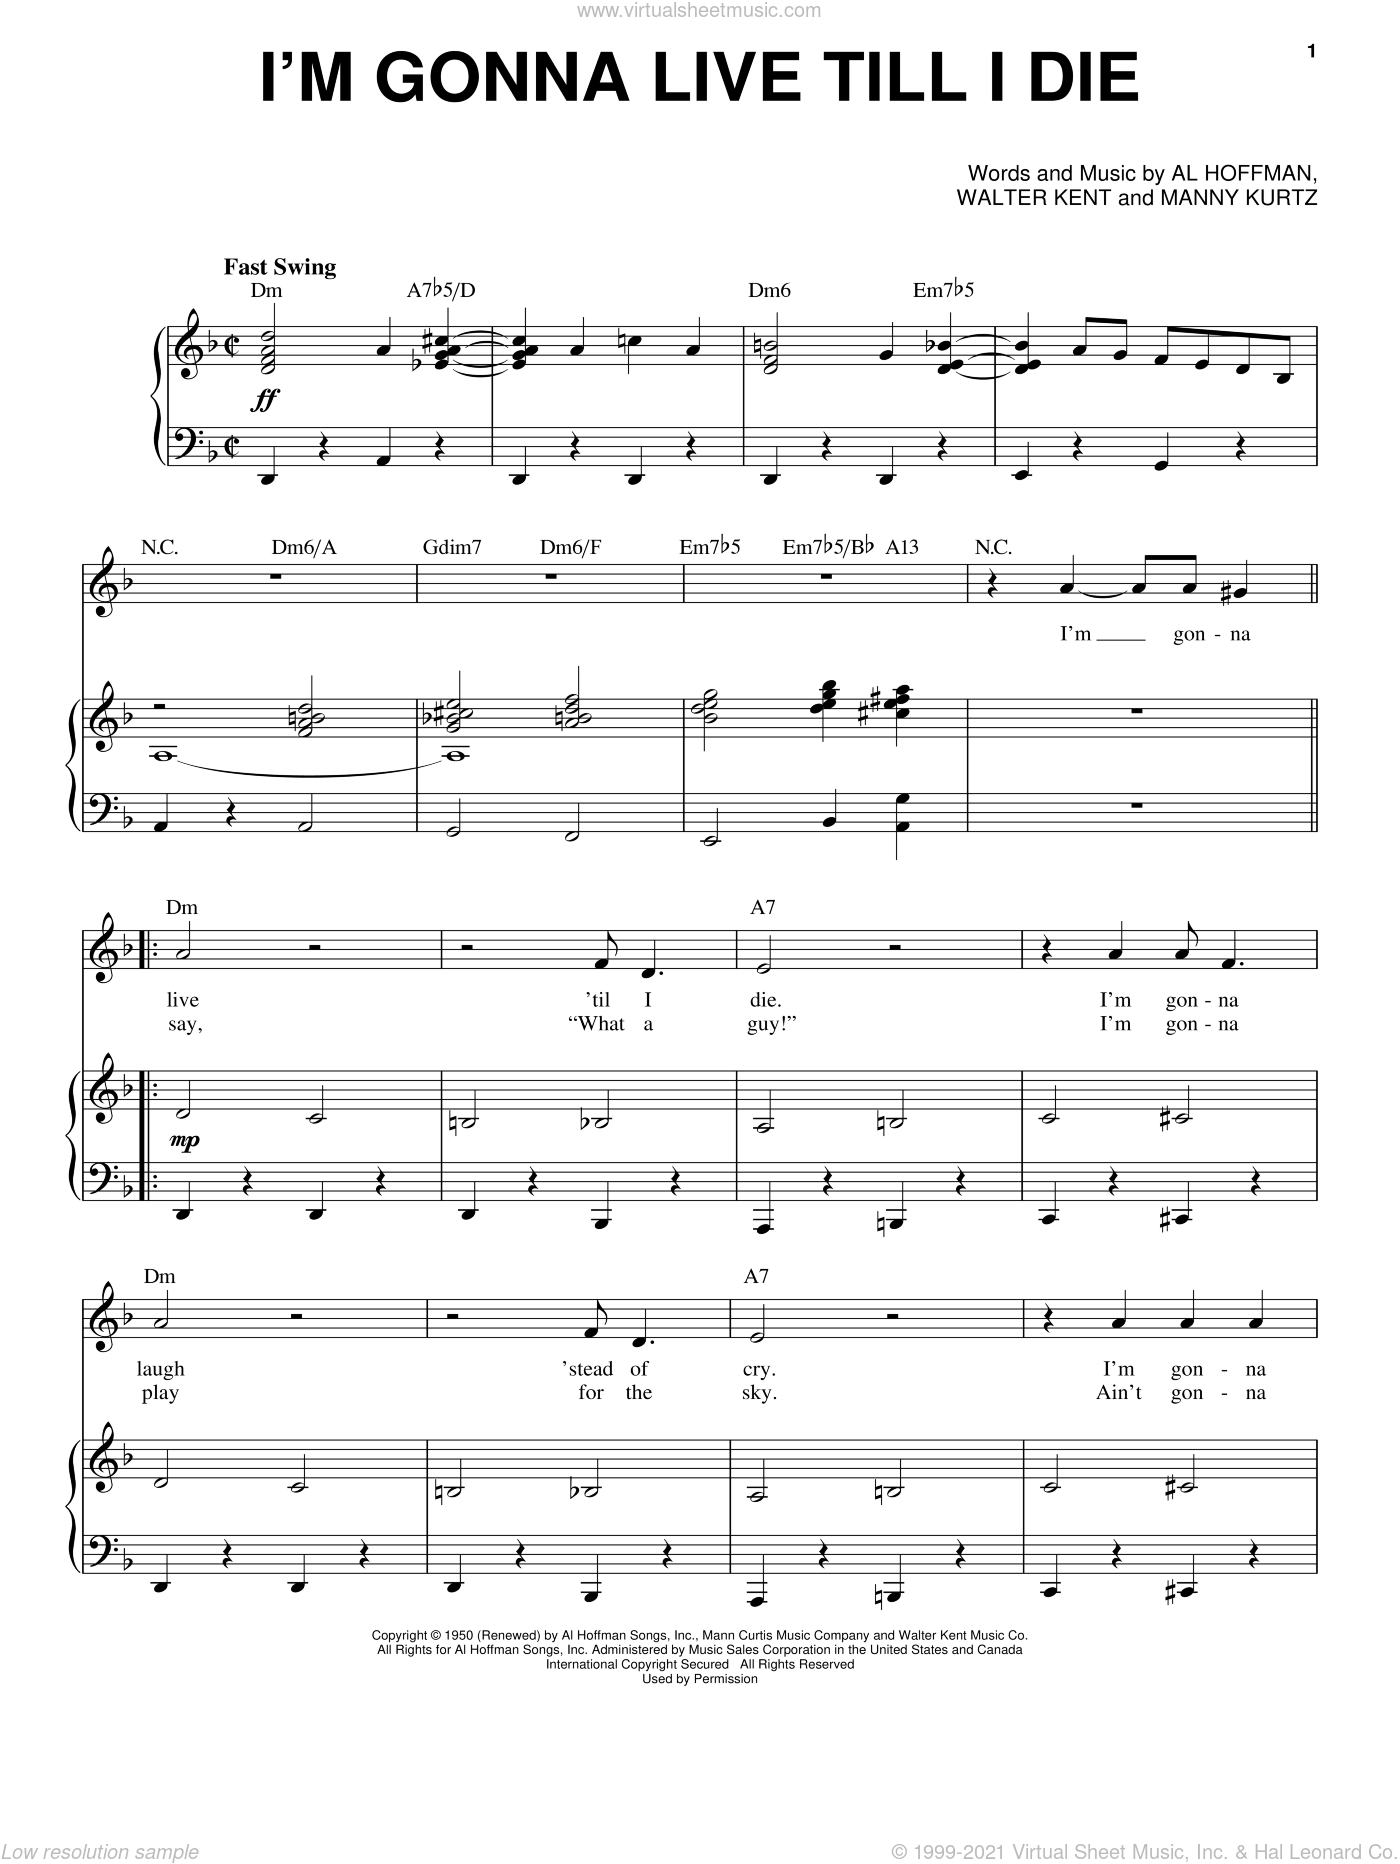 I'm Gonna Live Till I Die sheet music for voice and piano by Walter Kent